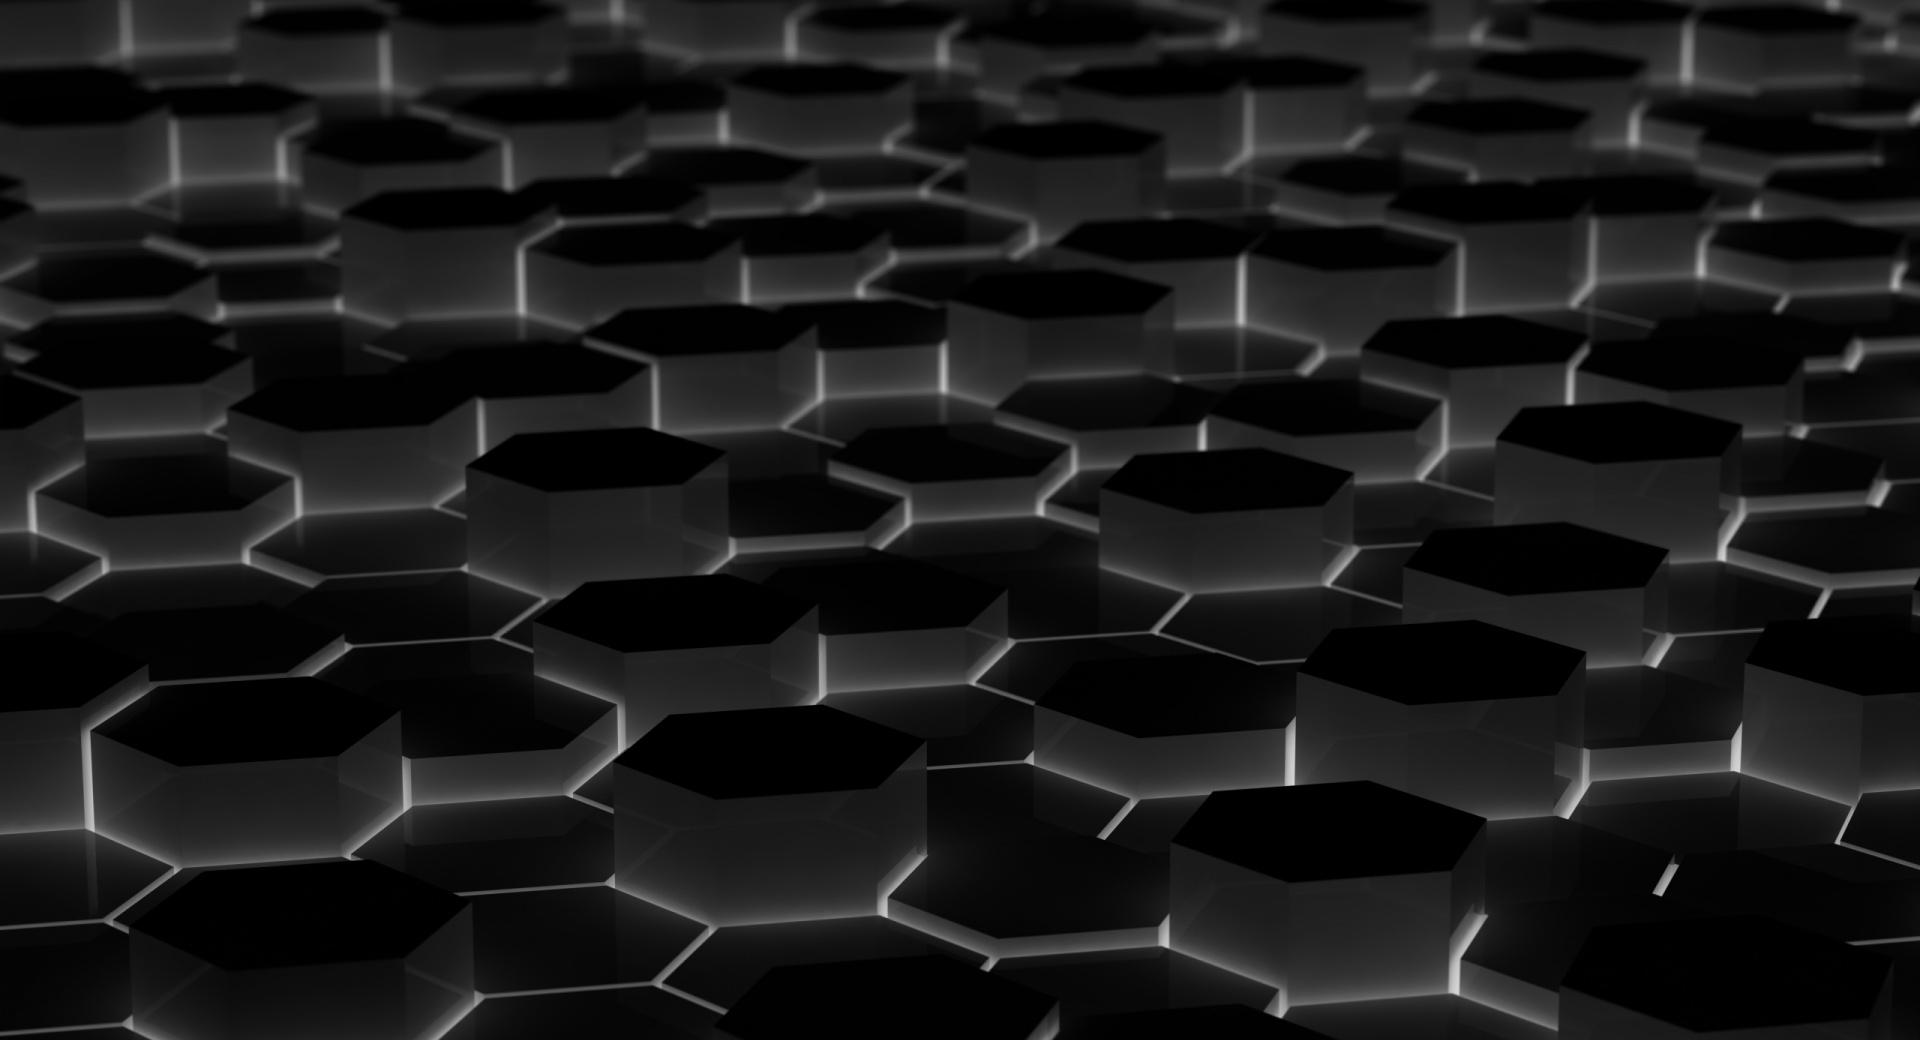 Black Hexagons wallpapers HD quality